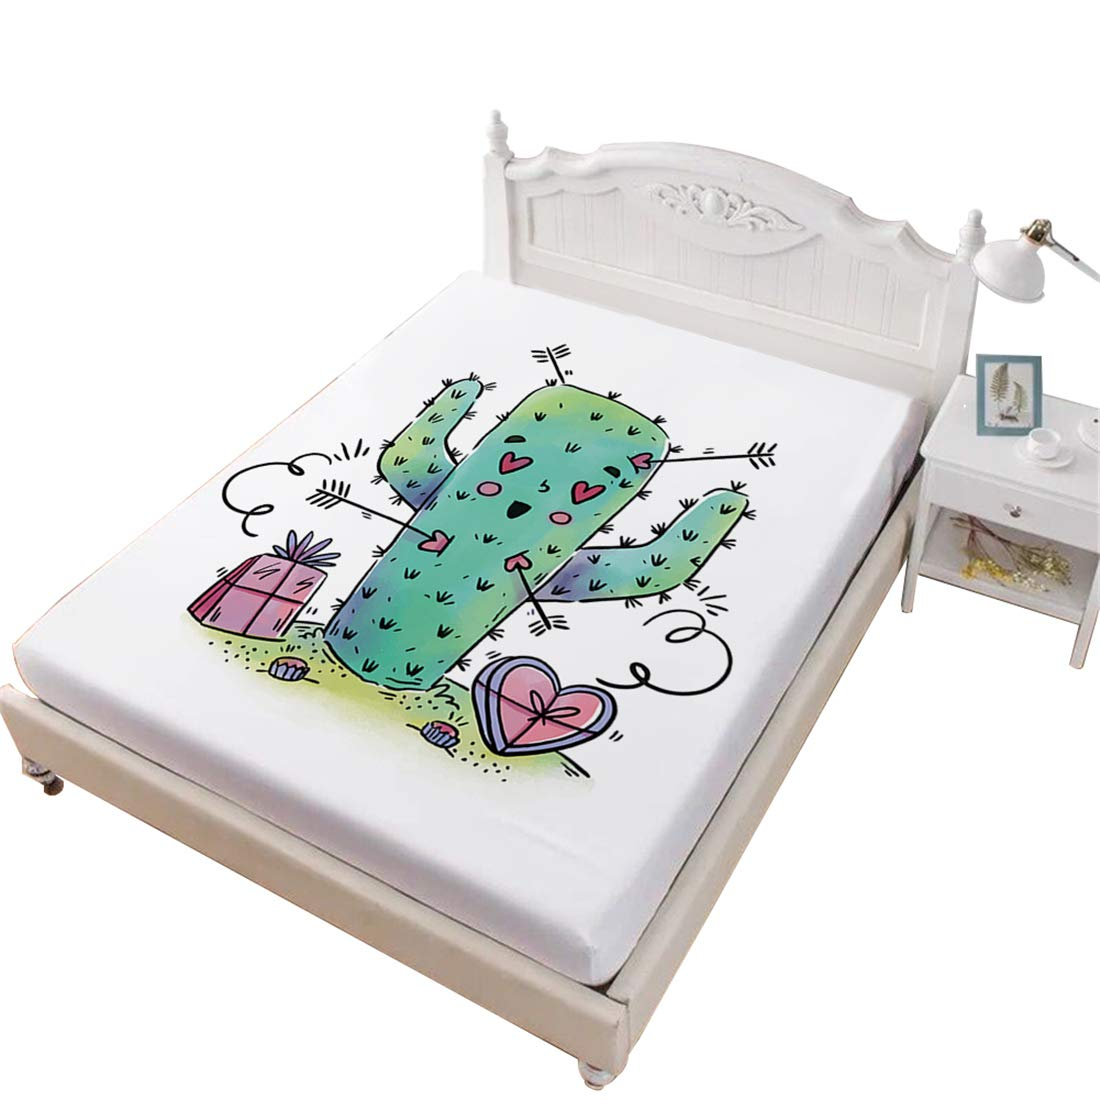 Oliven Bed Sheet King Size Cartoon Cactus Heart Fitted Sheet King Size Boys Girls Gifts Home Decor,White